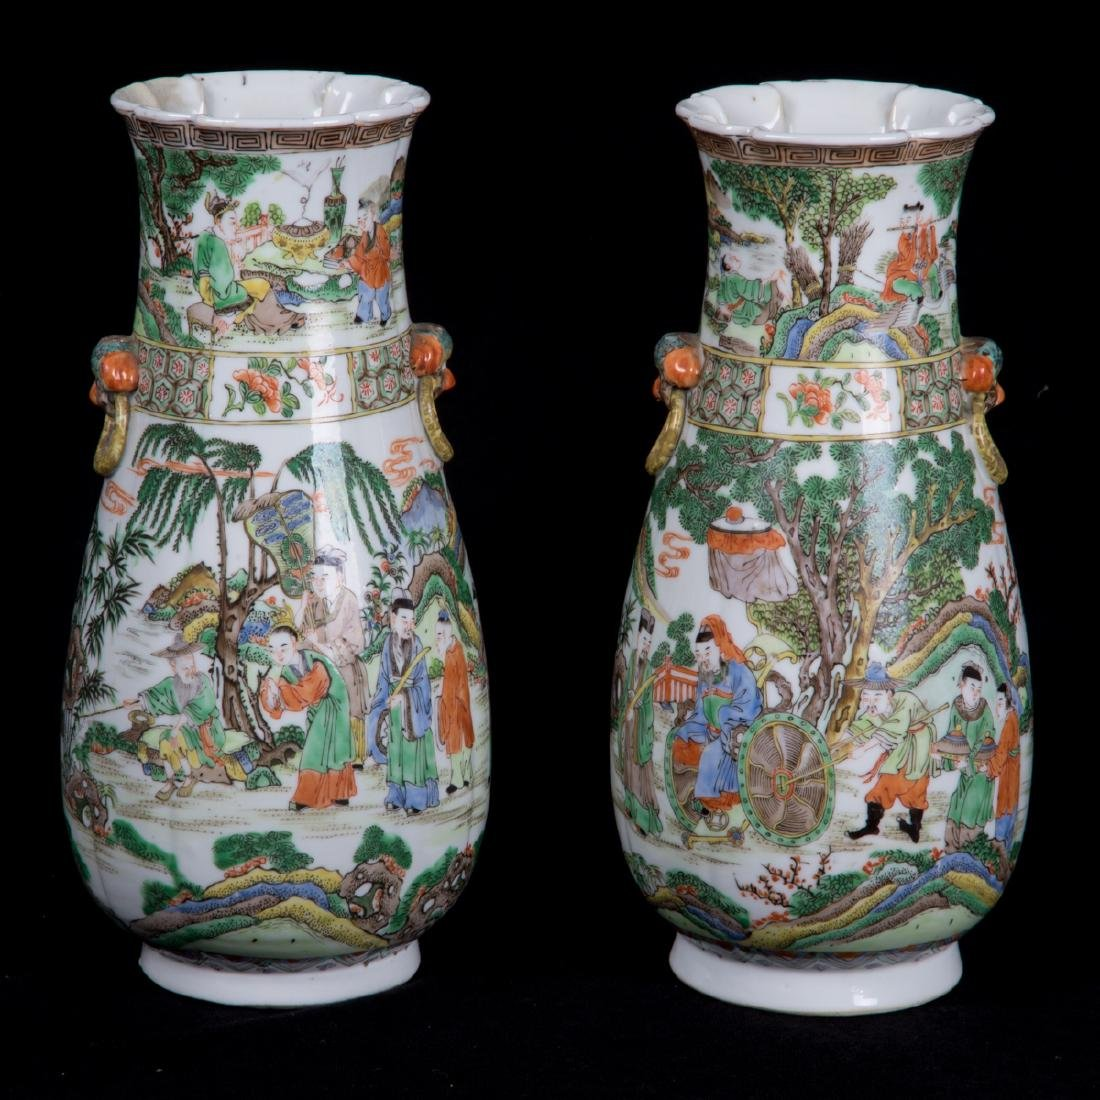 A Pair of Chinese Famille Rose Porcelain Vases, 20th